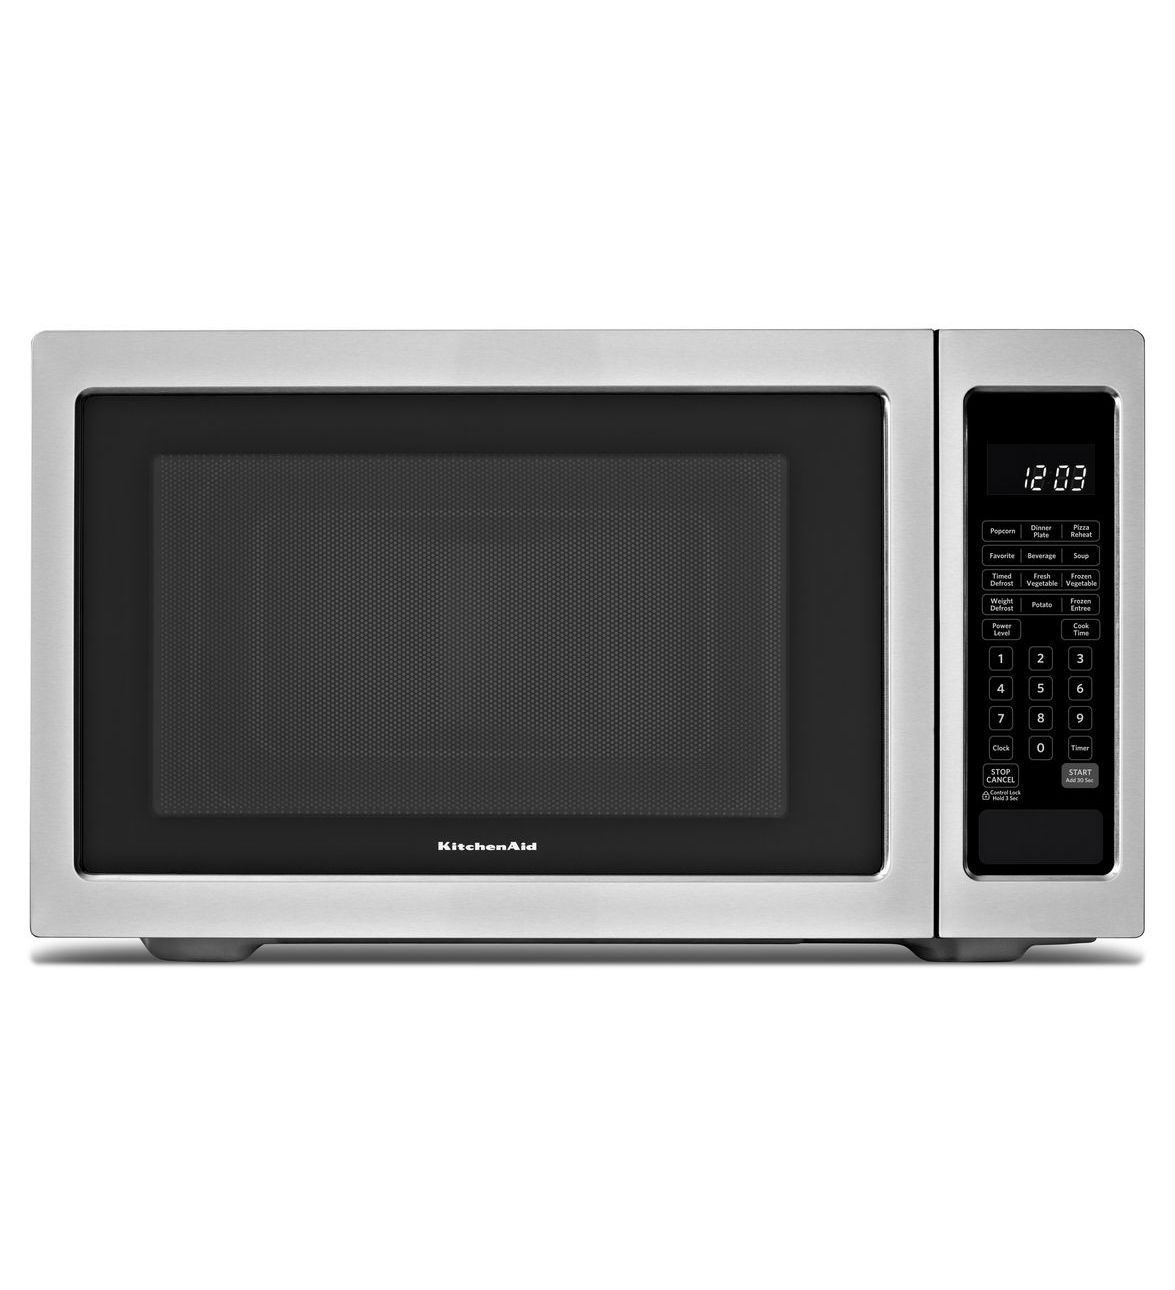 Kitchenaid 1200 Watt Countertop Microwave Oven Architect Series